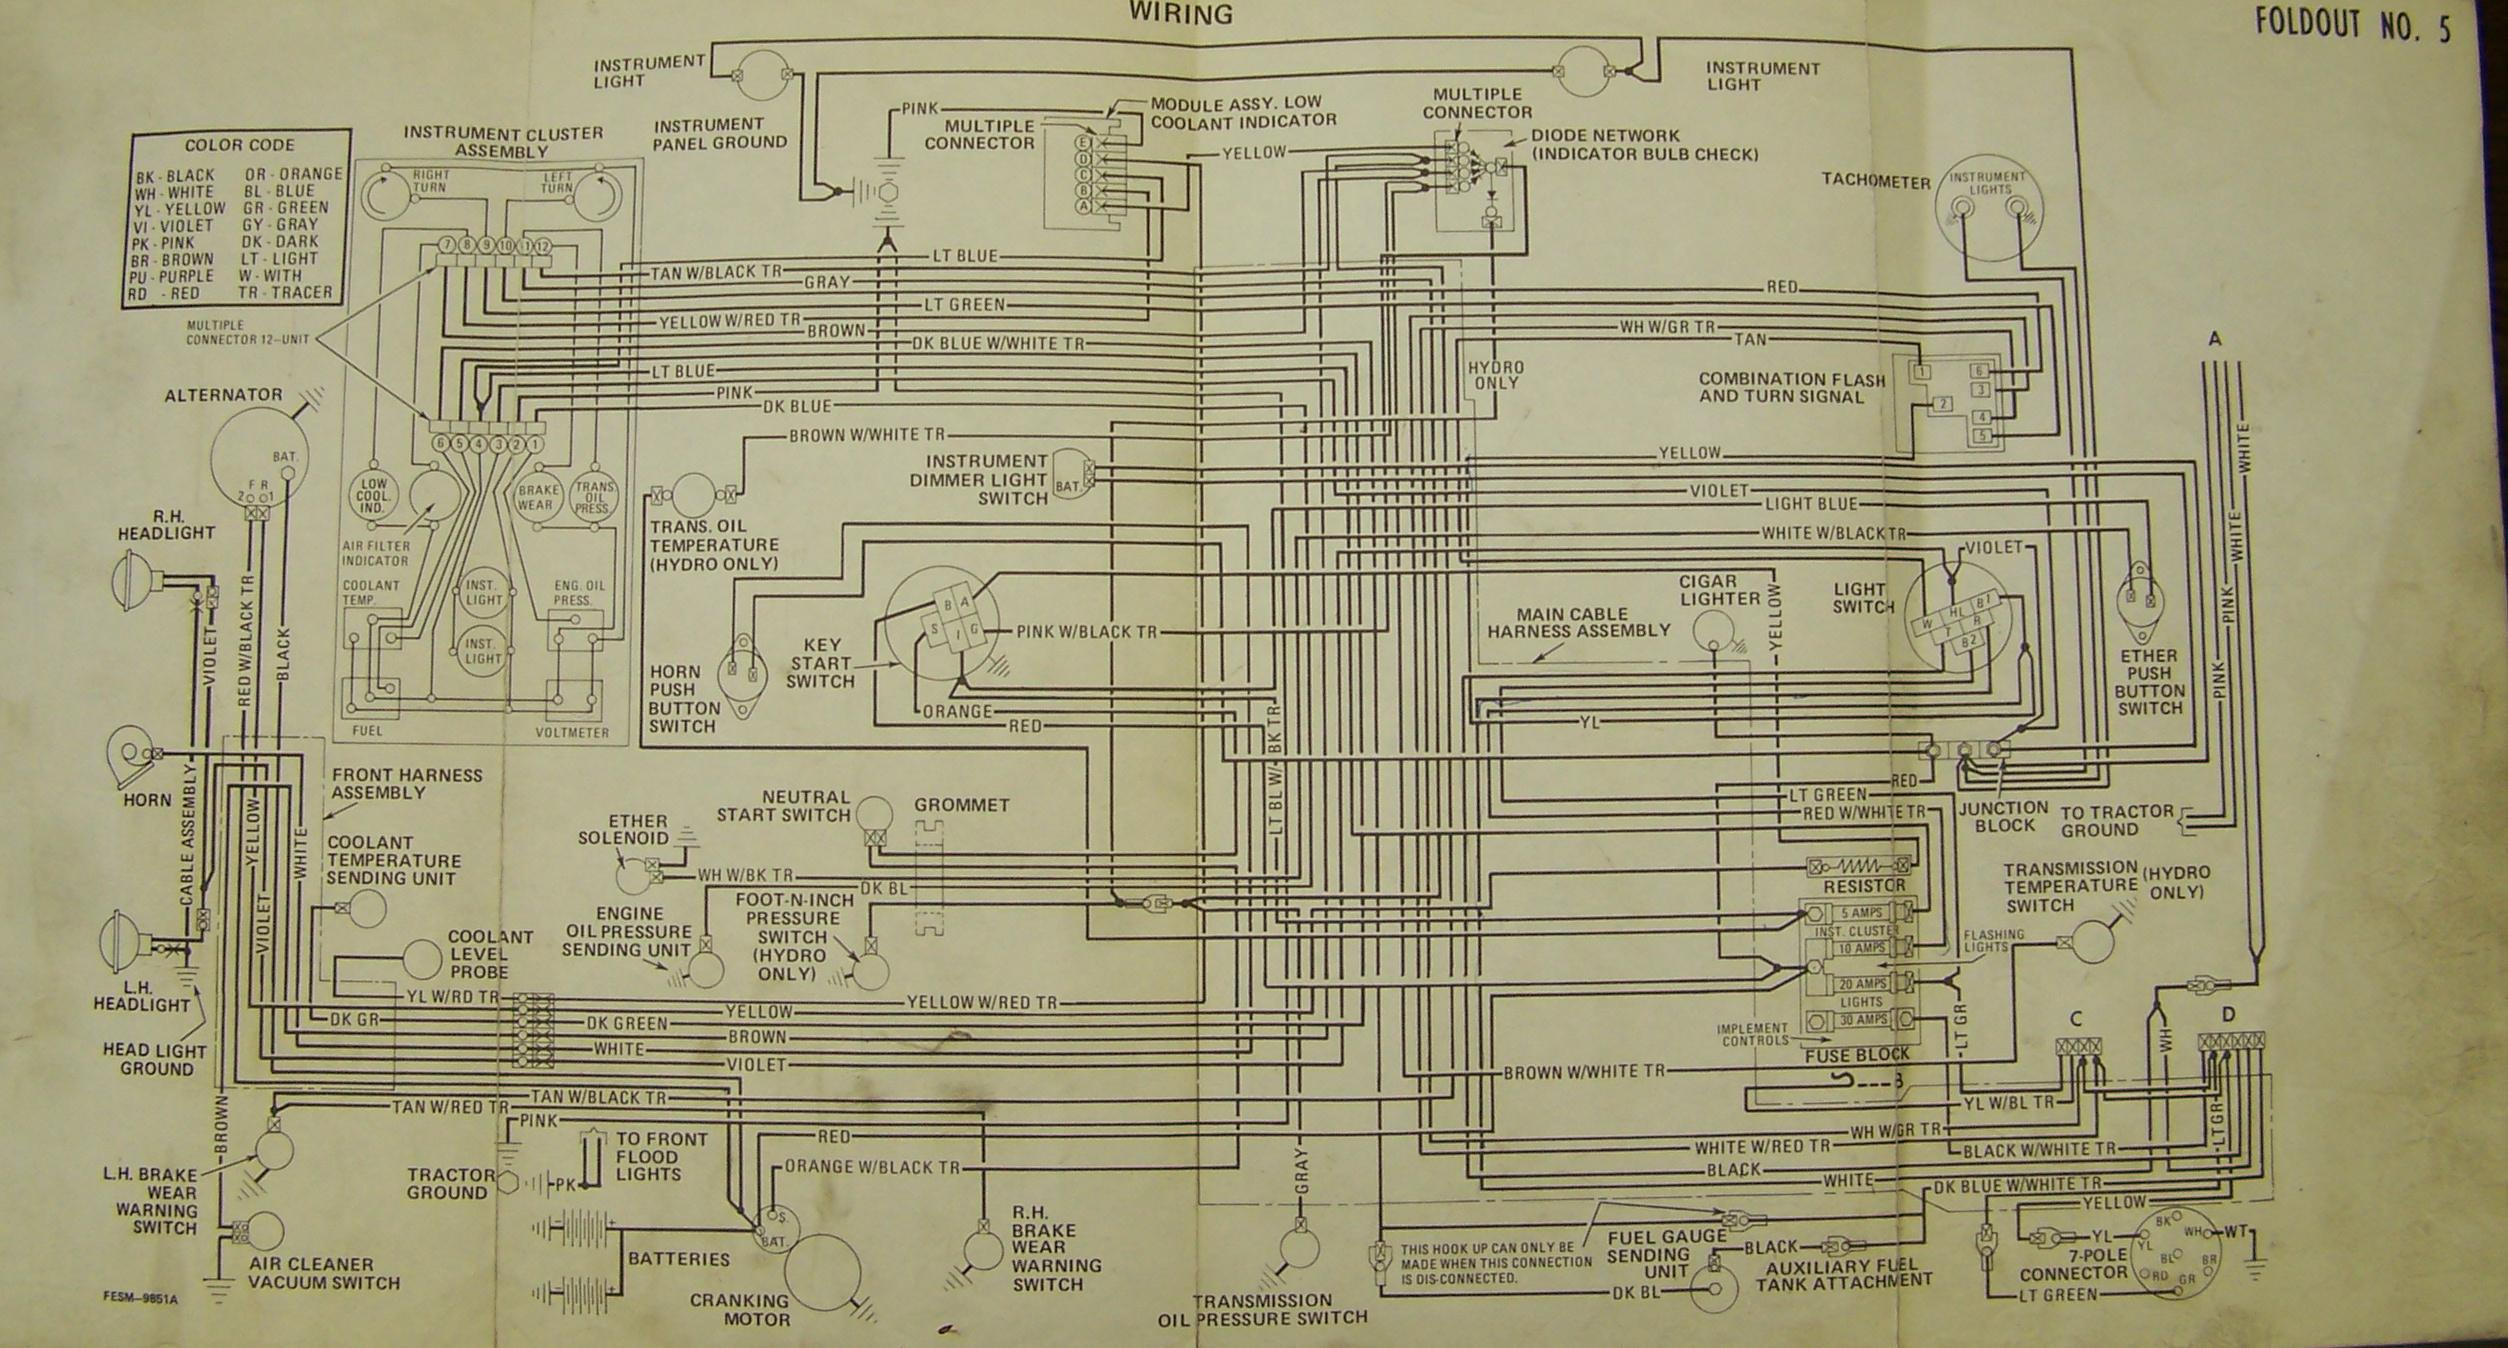 86series5 ih tractor wiring diagram ih tractor power steering \u2022 free wiring case 885 wiring diagram at soozxer.org